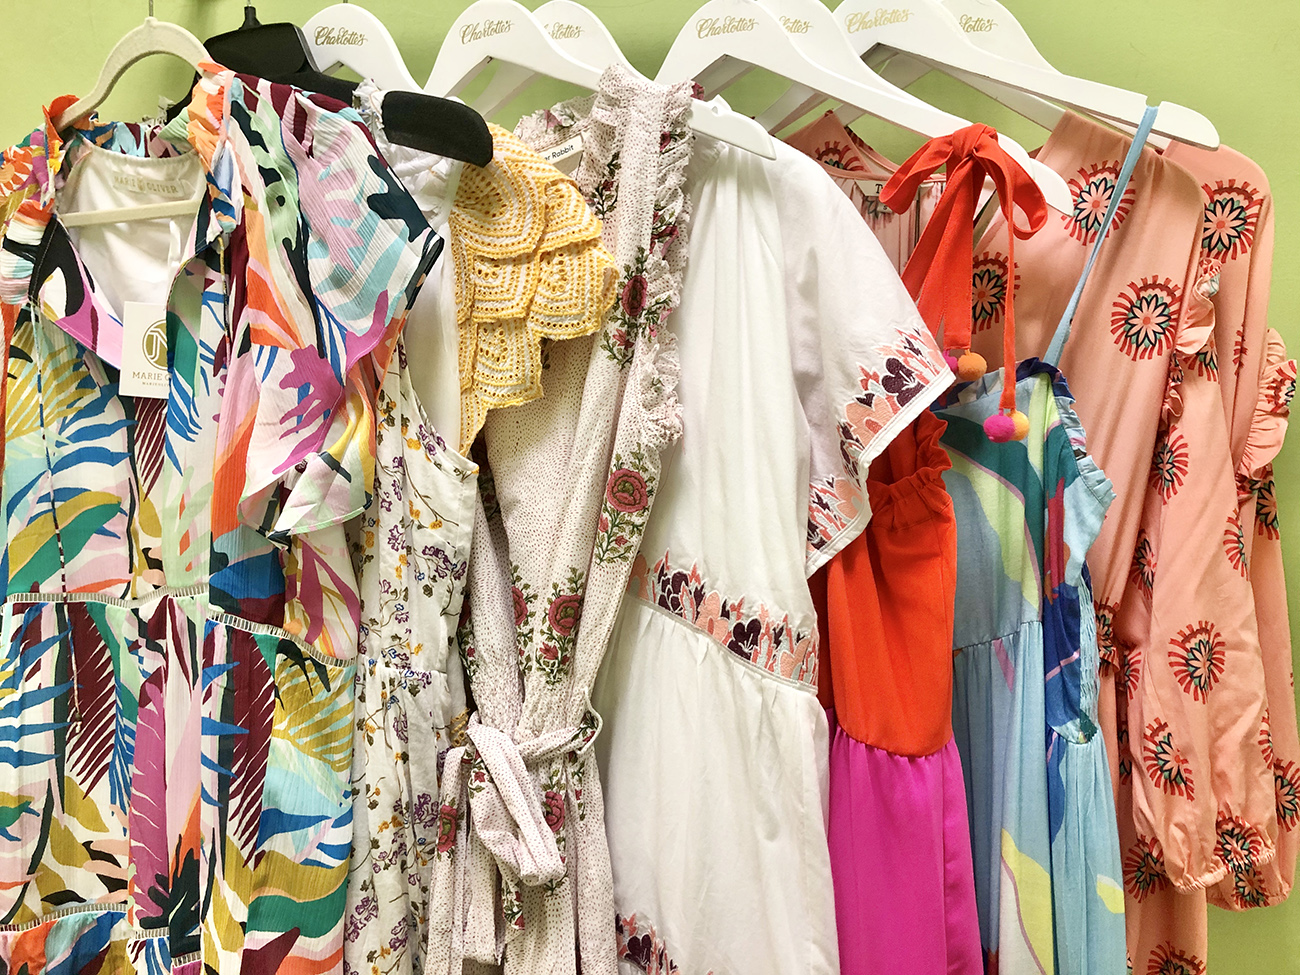 Fashion guide: 6 summer trends to try — and where to buy in Charlotte